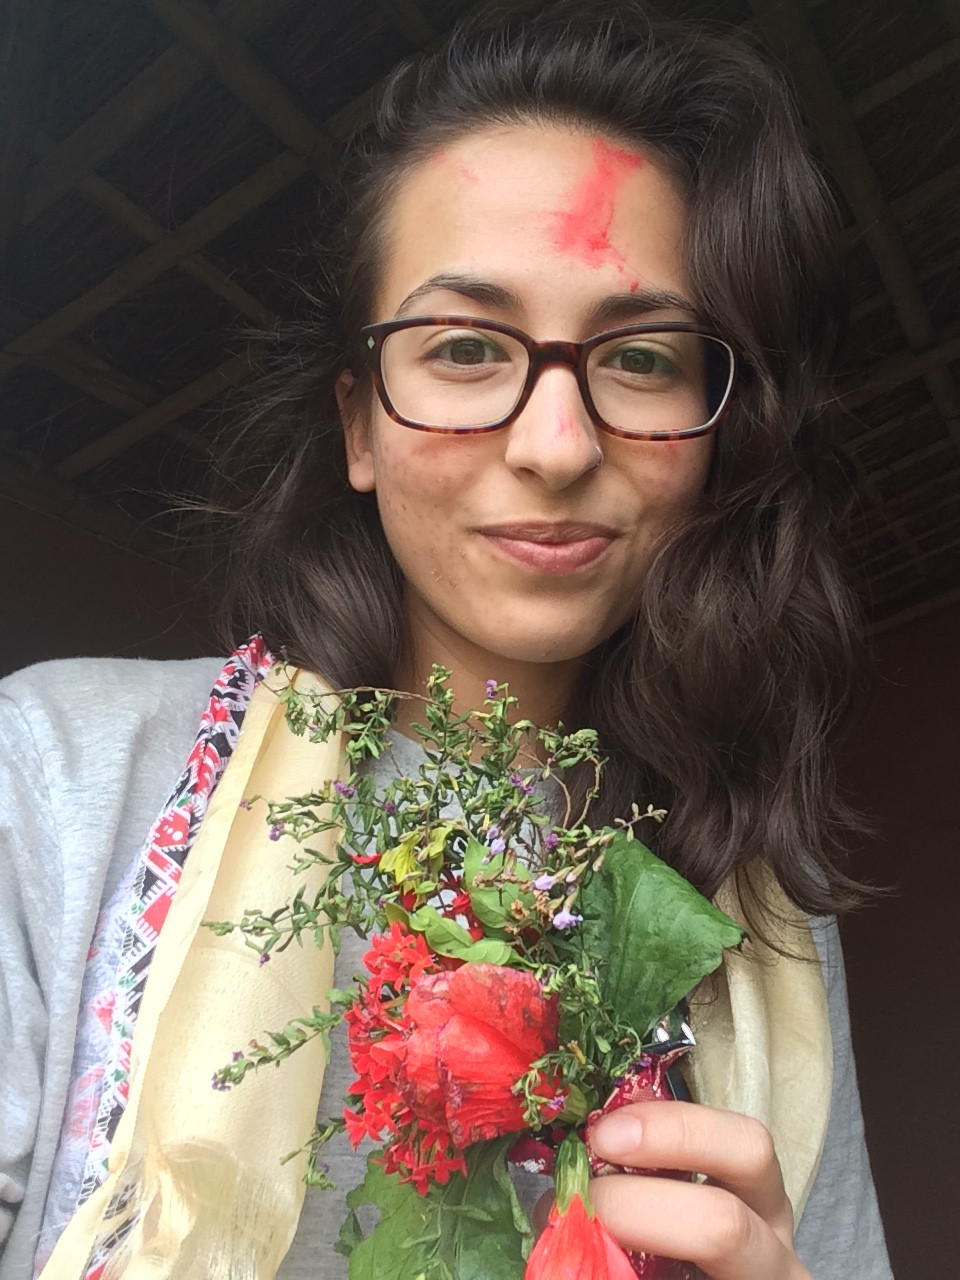 girl holding flowers with vermillion on face